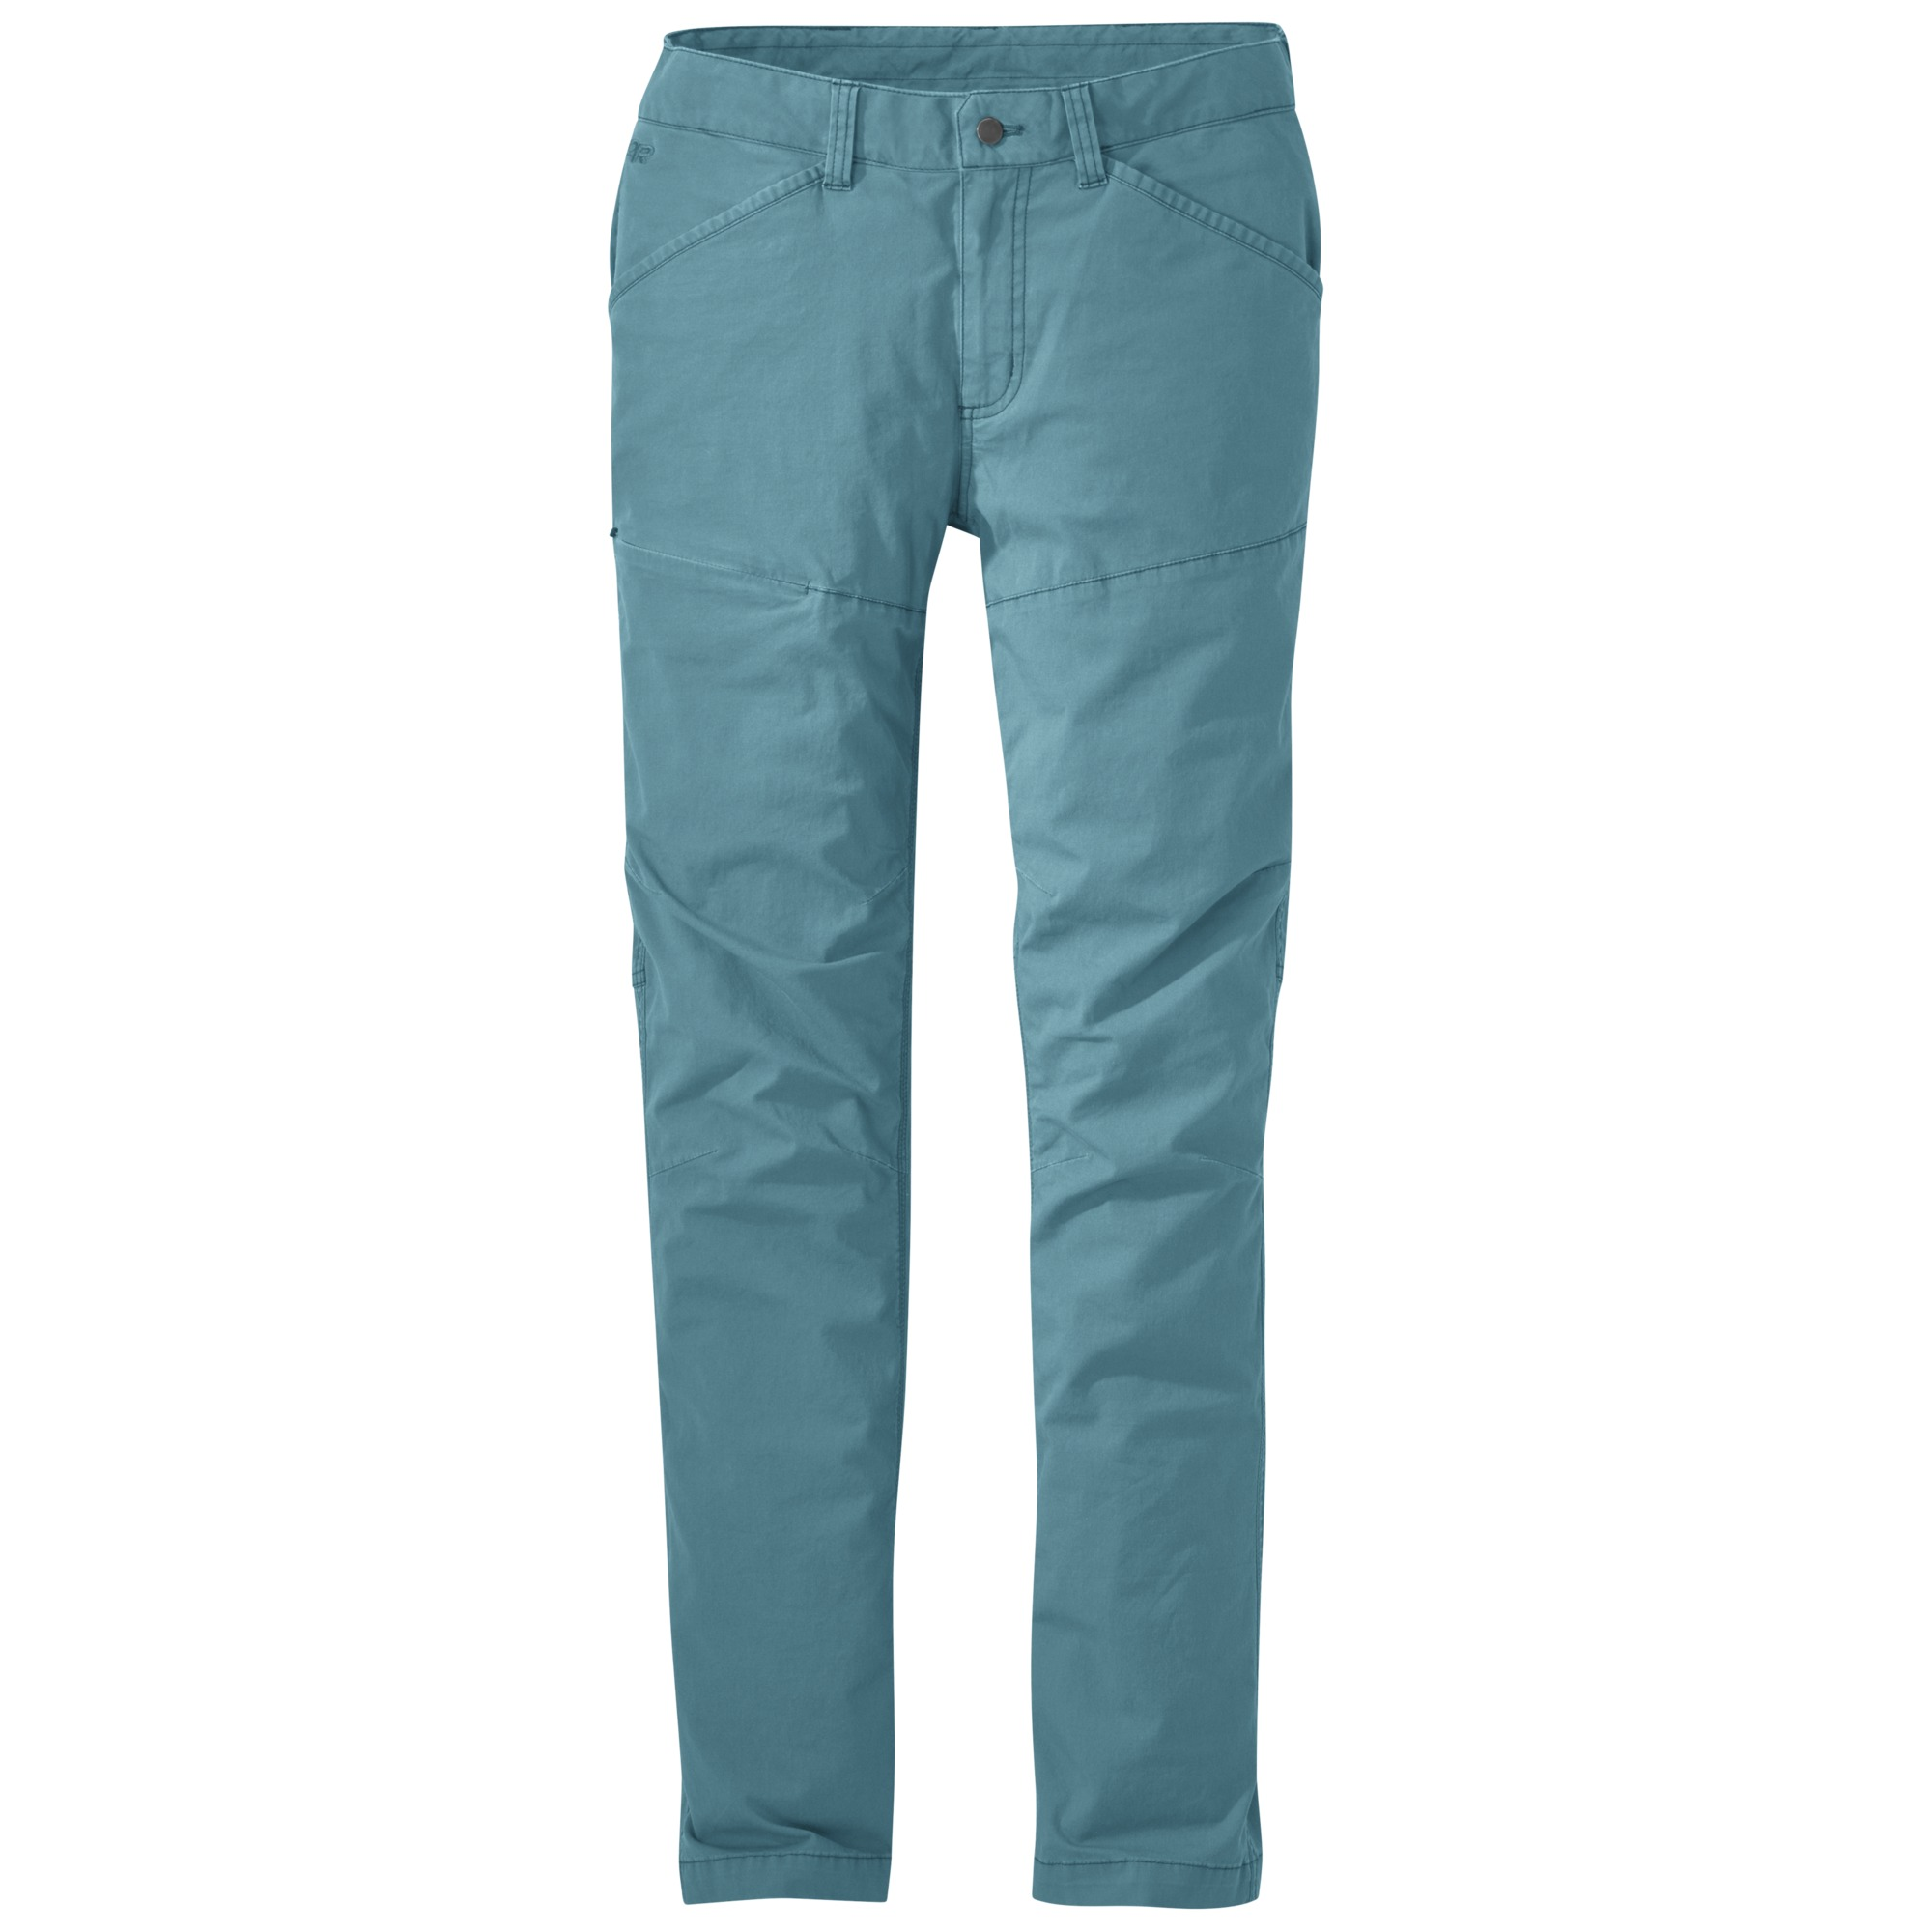 cb77ae2de0f Men's Wadi Rum Pants - washed peacock | Outdoor Research